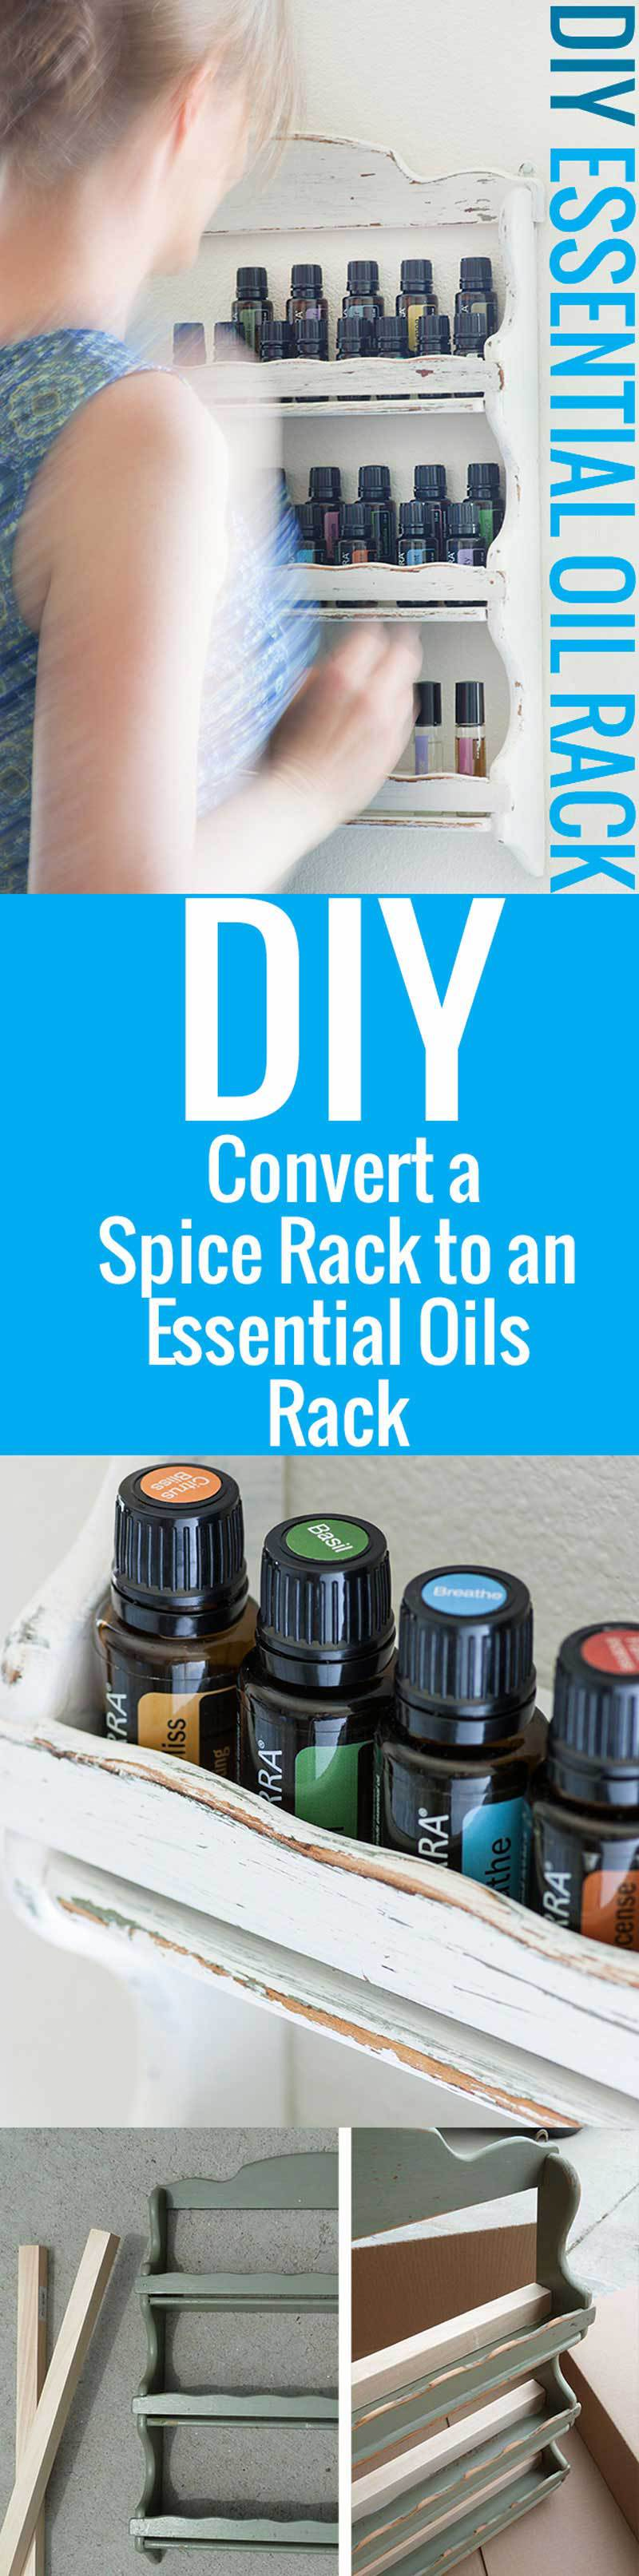 As my collection of essential oils grew, it becameclear that I needed a dedicated essential oils storage spot in the house—this DIY rack was perfect.